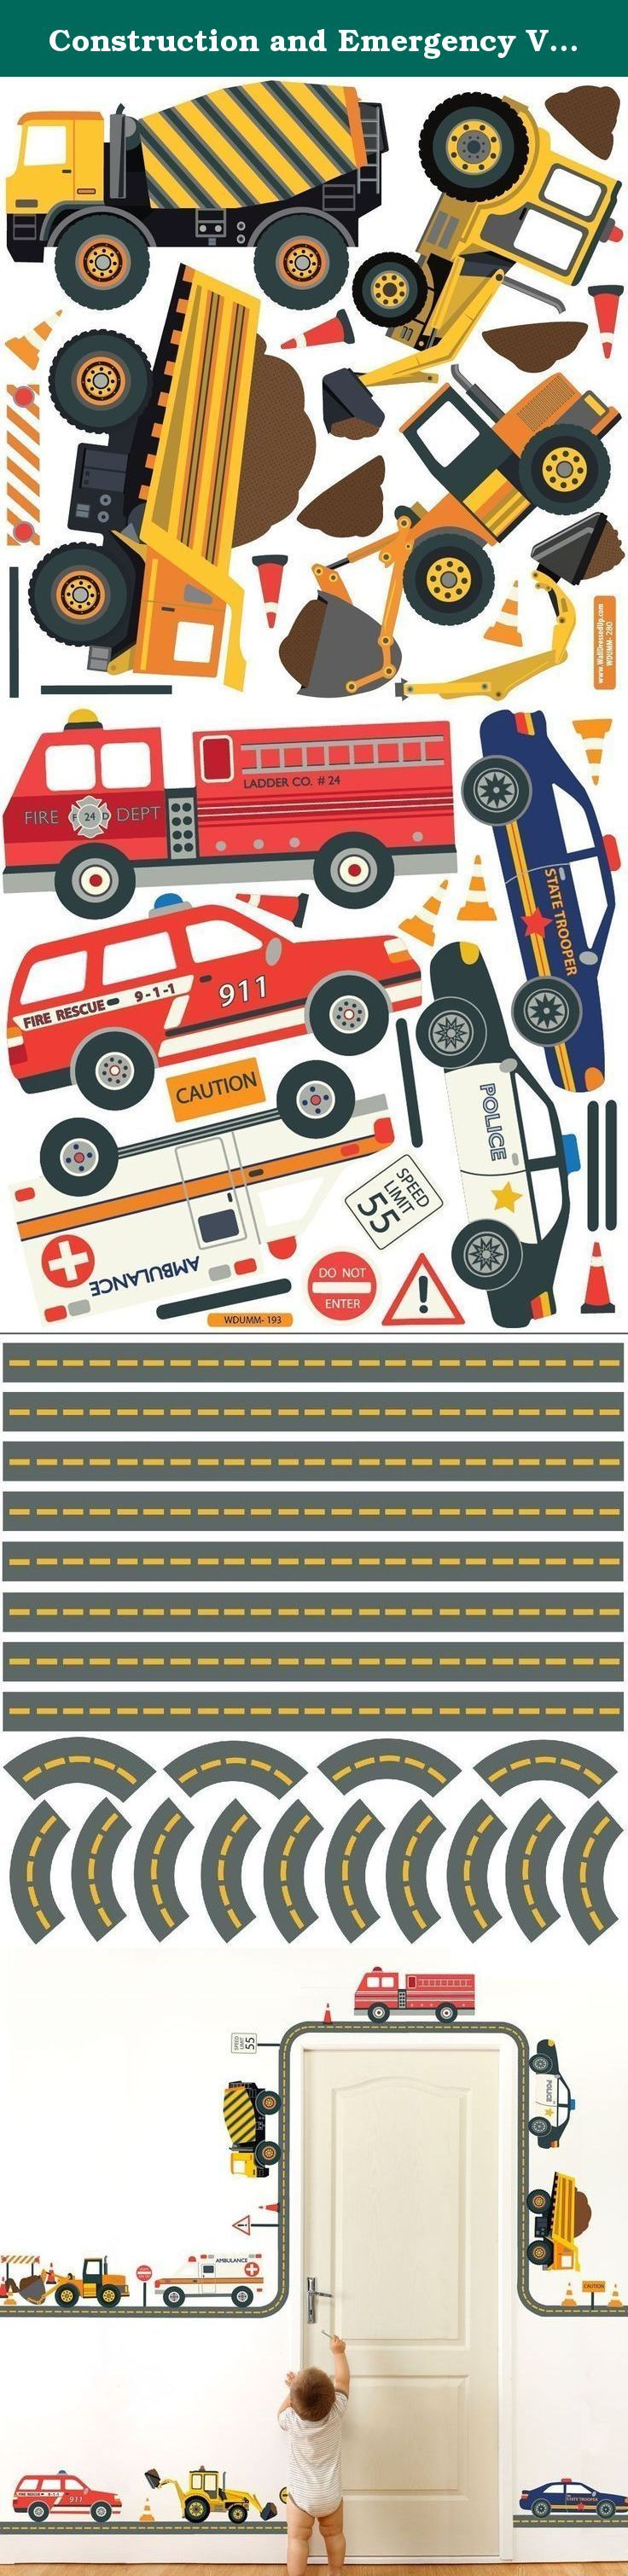 """Construction and Emergency Vehicle Fabric Wall Decals with Straight and Curved Gray Road. Cement mixer, dump truck, back hoe, excavator, ambulance, police car, state trooper, EMS vehicle and fire engine wall decals. 6 street signs and 10 traffic cones with straight and curved gray road wall decals. Just peel & stick, our reusable fabric wall decals are great for kids rooms and apartments as there is no damage to walls! Dimensions: 9 vehicles: Cement mixer 14.5""""w x 8.75""""h Dump truck 15.9""""w…"""